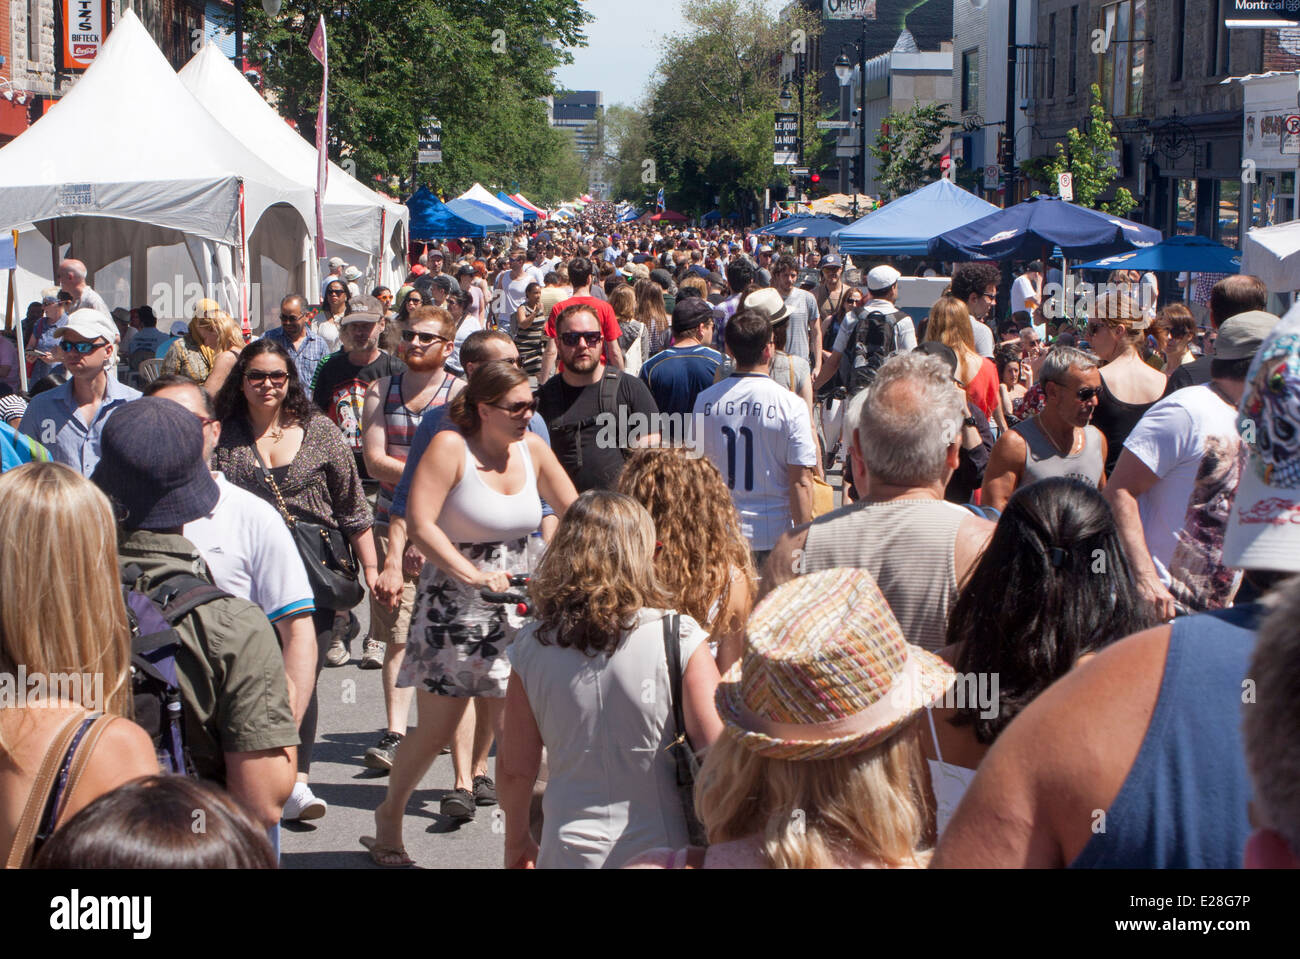 People flock to the street sale on St. Lawrence Boulevard in Montreal - Stock Image